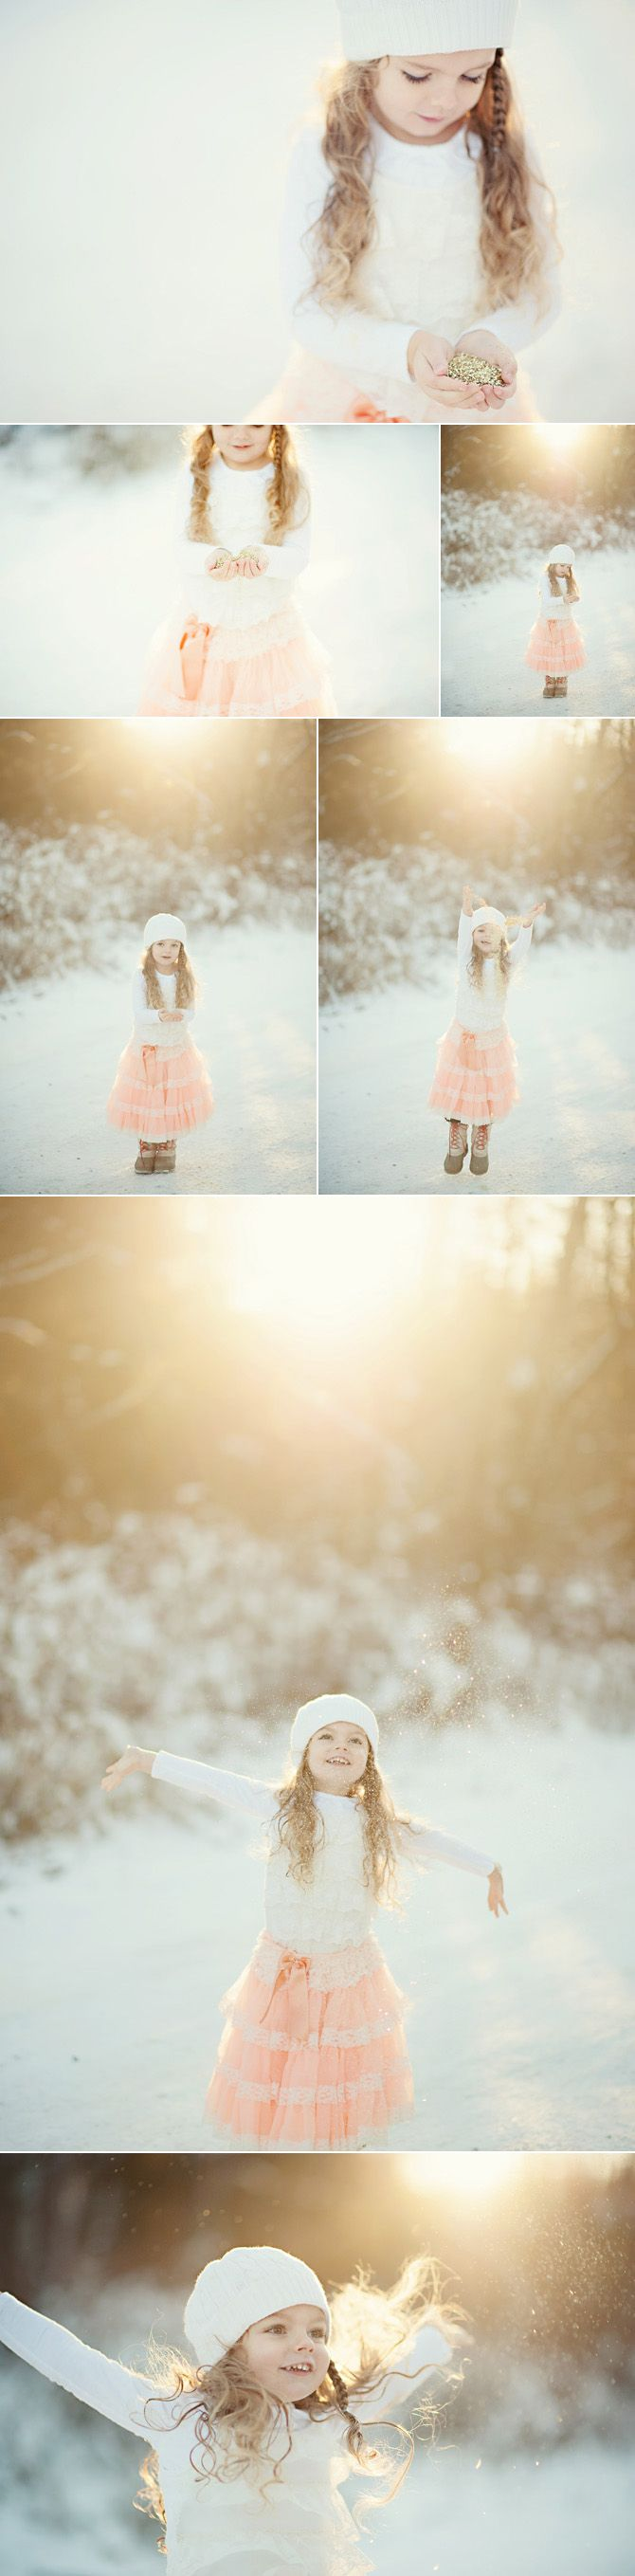 glitter girl, little girl in the snow with glitter, gold glitter, gold glitter photos, photo shoot with glitter, snow glitter girl.  Lindsey......I want to do this with brylee in a few years!!!